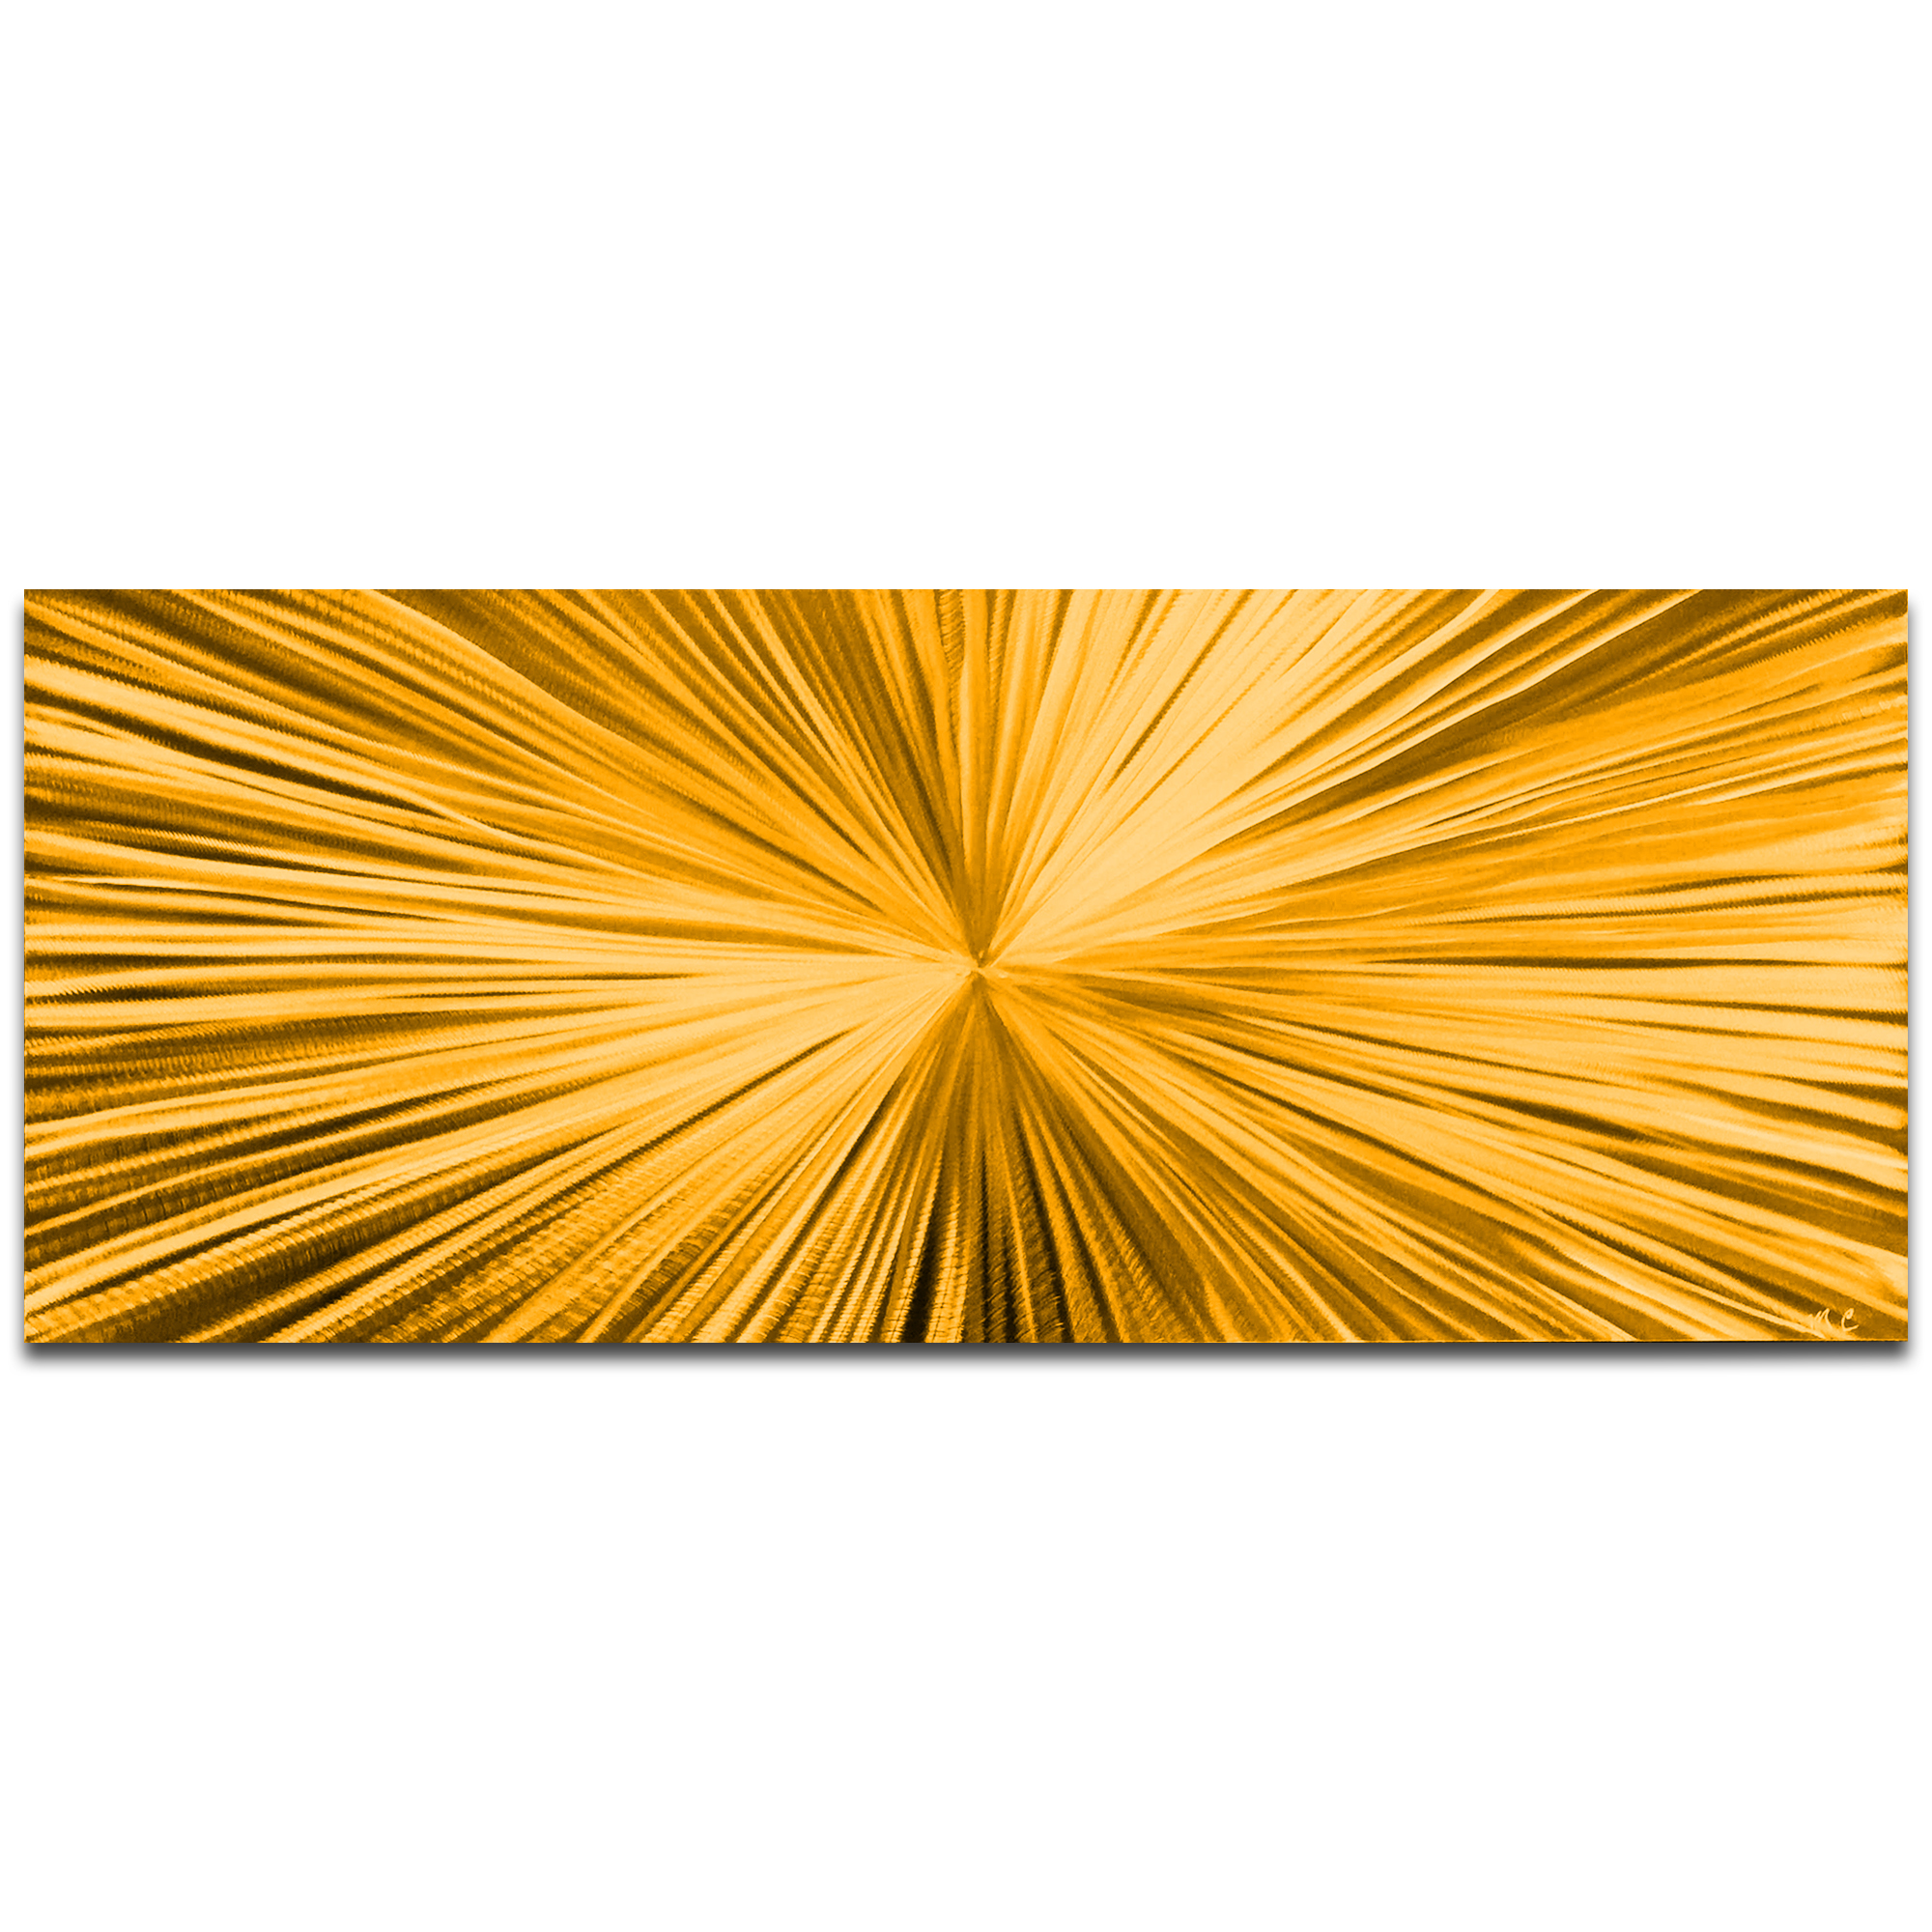 Helena Martin 'Starburst Gold' 60in x 24in Original Abstract Art on Ground and Painted Metal